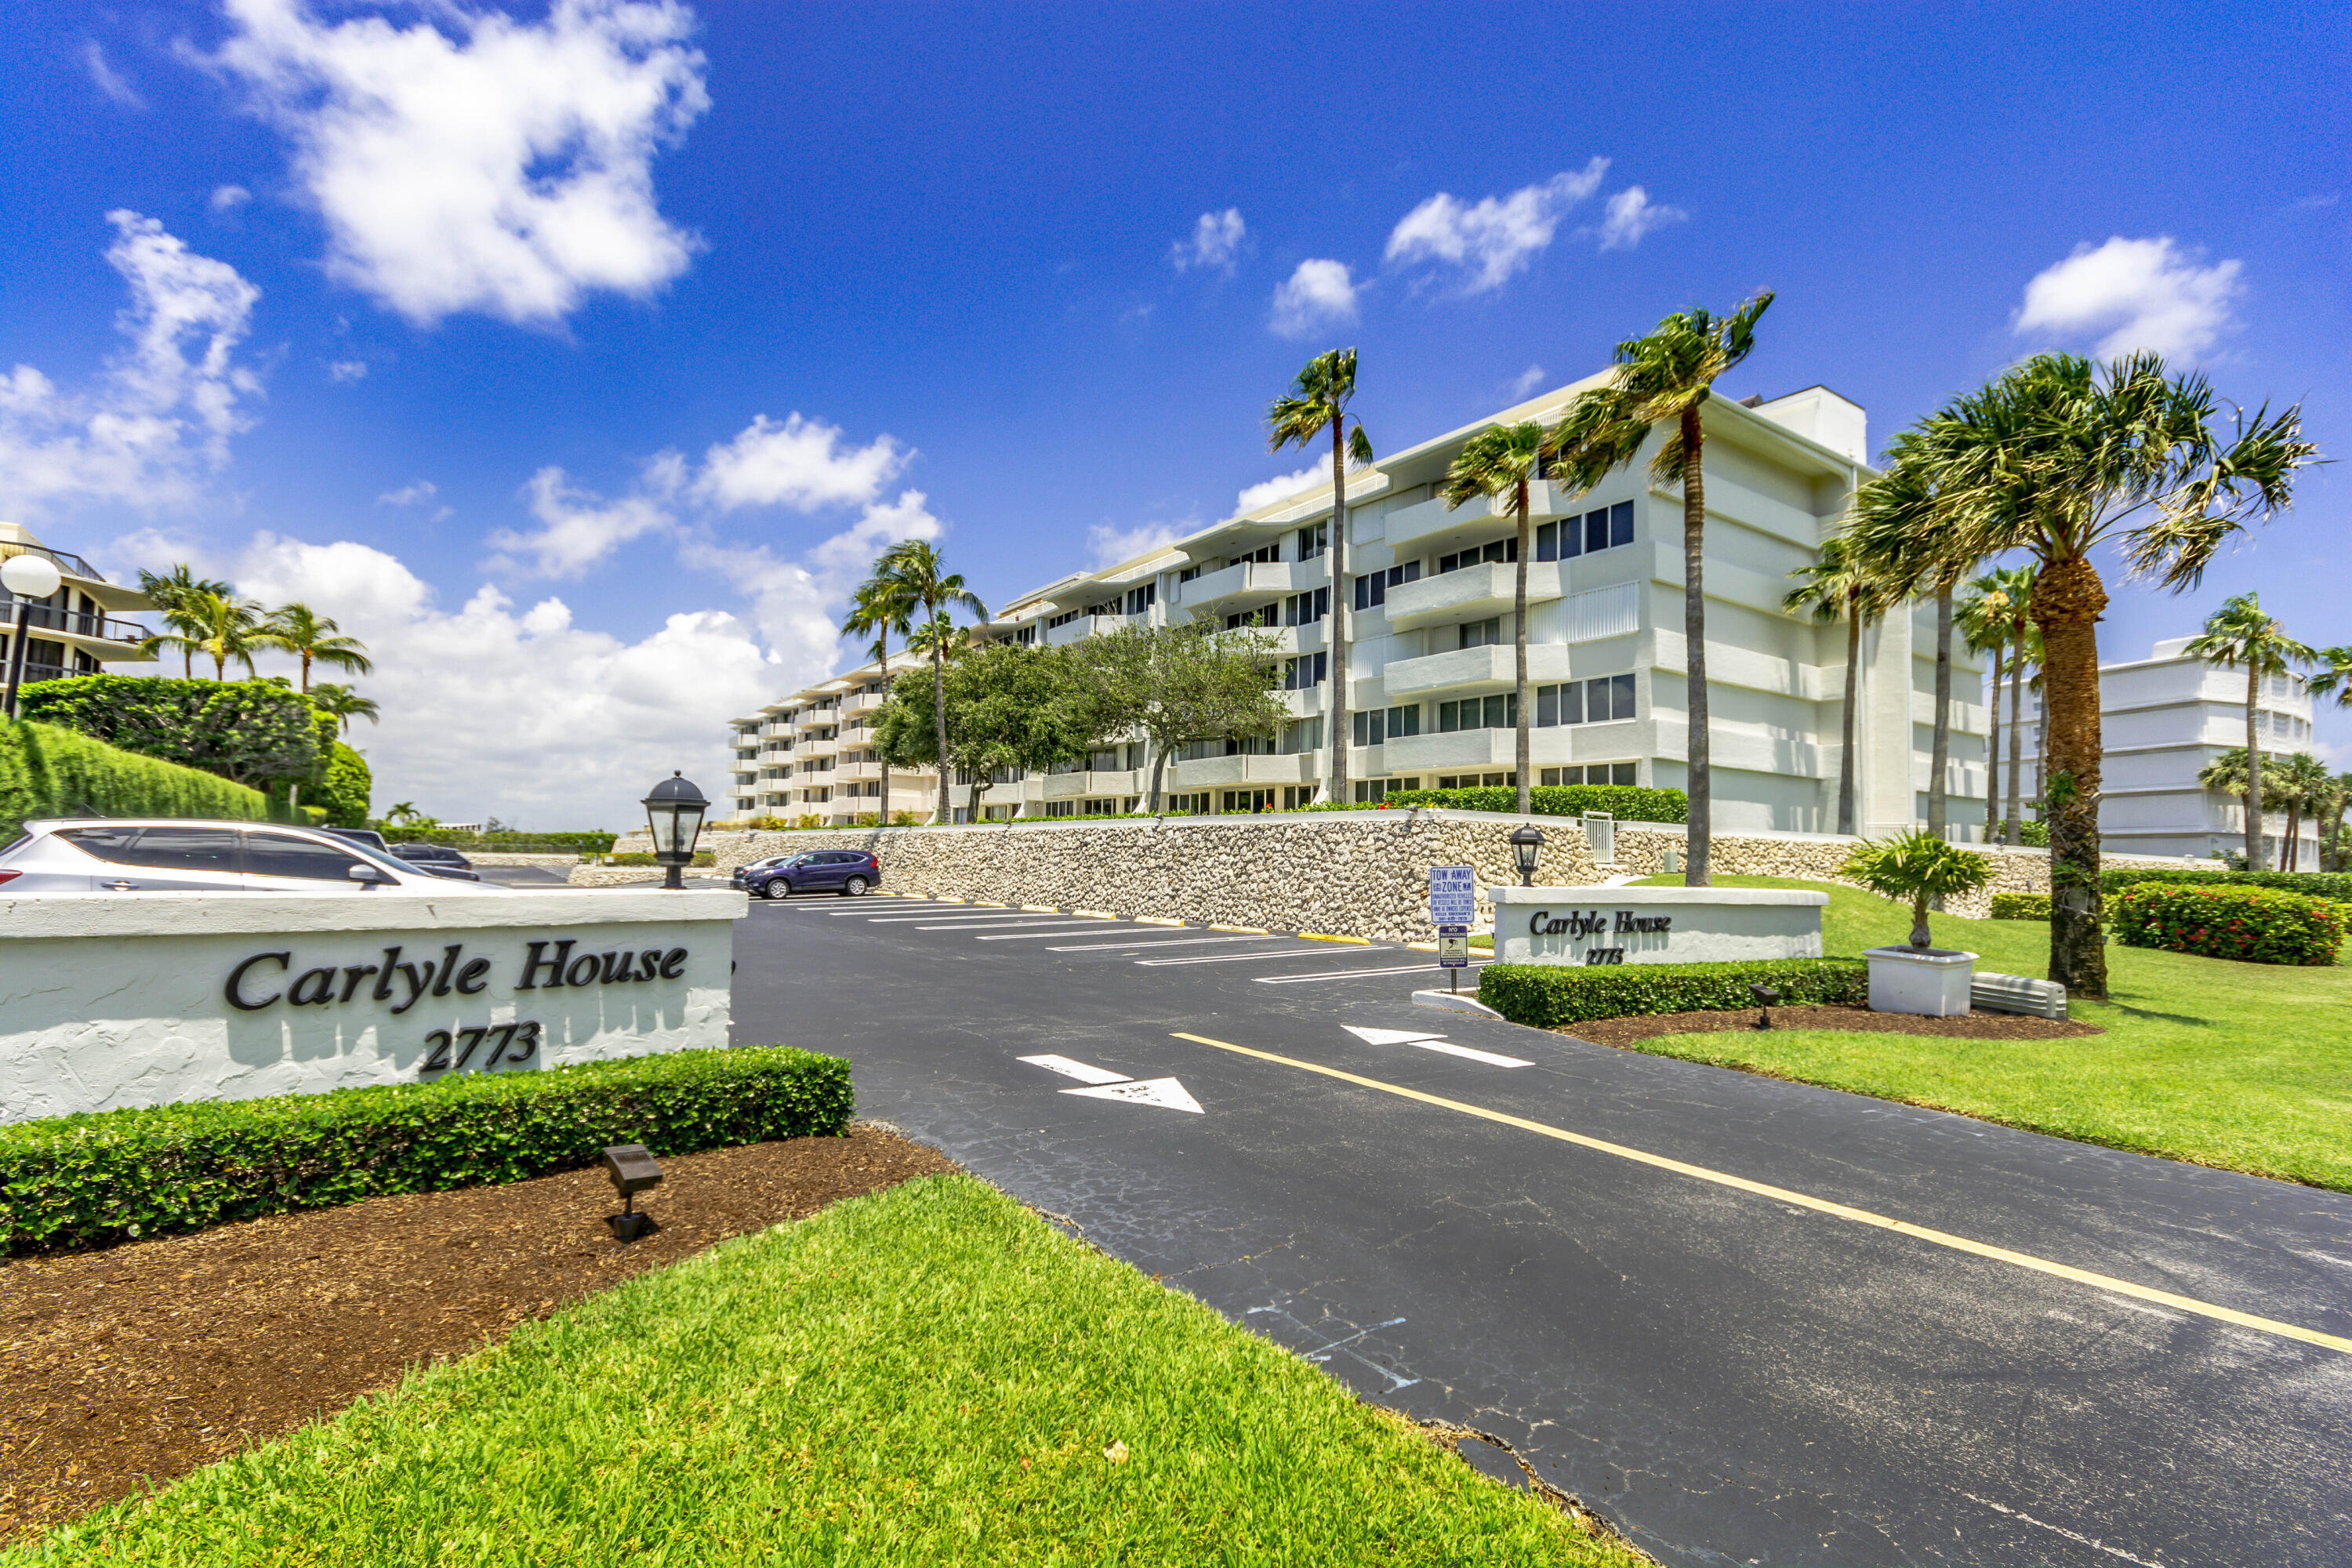 Enter This Beautifully Renovated Spacious 2/2 Split Floor Plan Condo & Be Taken by The Inviting Balcony Views of the Intracoastal Waterway on the Left & the Salty Atlantic Ocean to the Right. The Modern Kitchen Features Stainless Steel Appliances, Granite Counters & Matching Granite Backsplash. The Features Continue as this Condo Offers Brand New Impact Glass, Crown Molding Throughout, & Top of the Line Washer & Dryer. Both Bedrooms Offer Large Walk-In Closets, Gorgeous Bathrooms, with the 2nd Bathroom Showcasing a Jacuzzi Tub. This Condo Comes with a One Car Under Building Parking Spot. The Carlyle House Offers 24 Hour Door Service, Exercise Facility & Community Rooms. A Private Deeded Walkway Directly Across the Street Offers Quick Access to the Ocean & Beachfront. Recent Renovations Include a Stunning Lobby, New Elevators, Restored Concrete & Updated Common Areas. Very Close to Golf, Restaurants, Shopping & the Many World Class Amenities of Palm Beach & Worth Avenue.